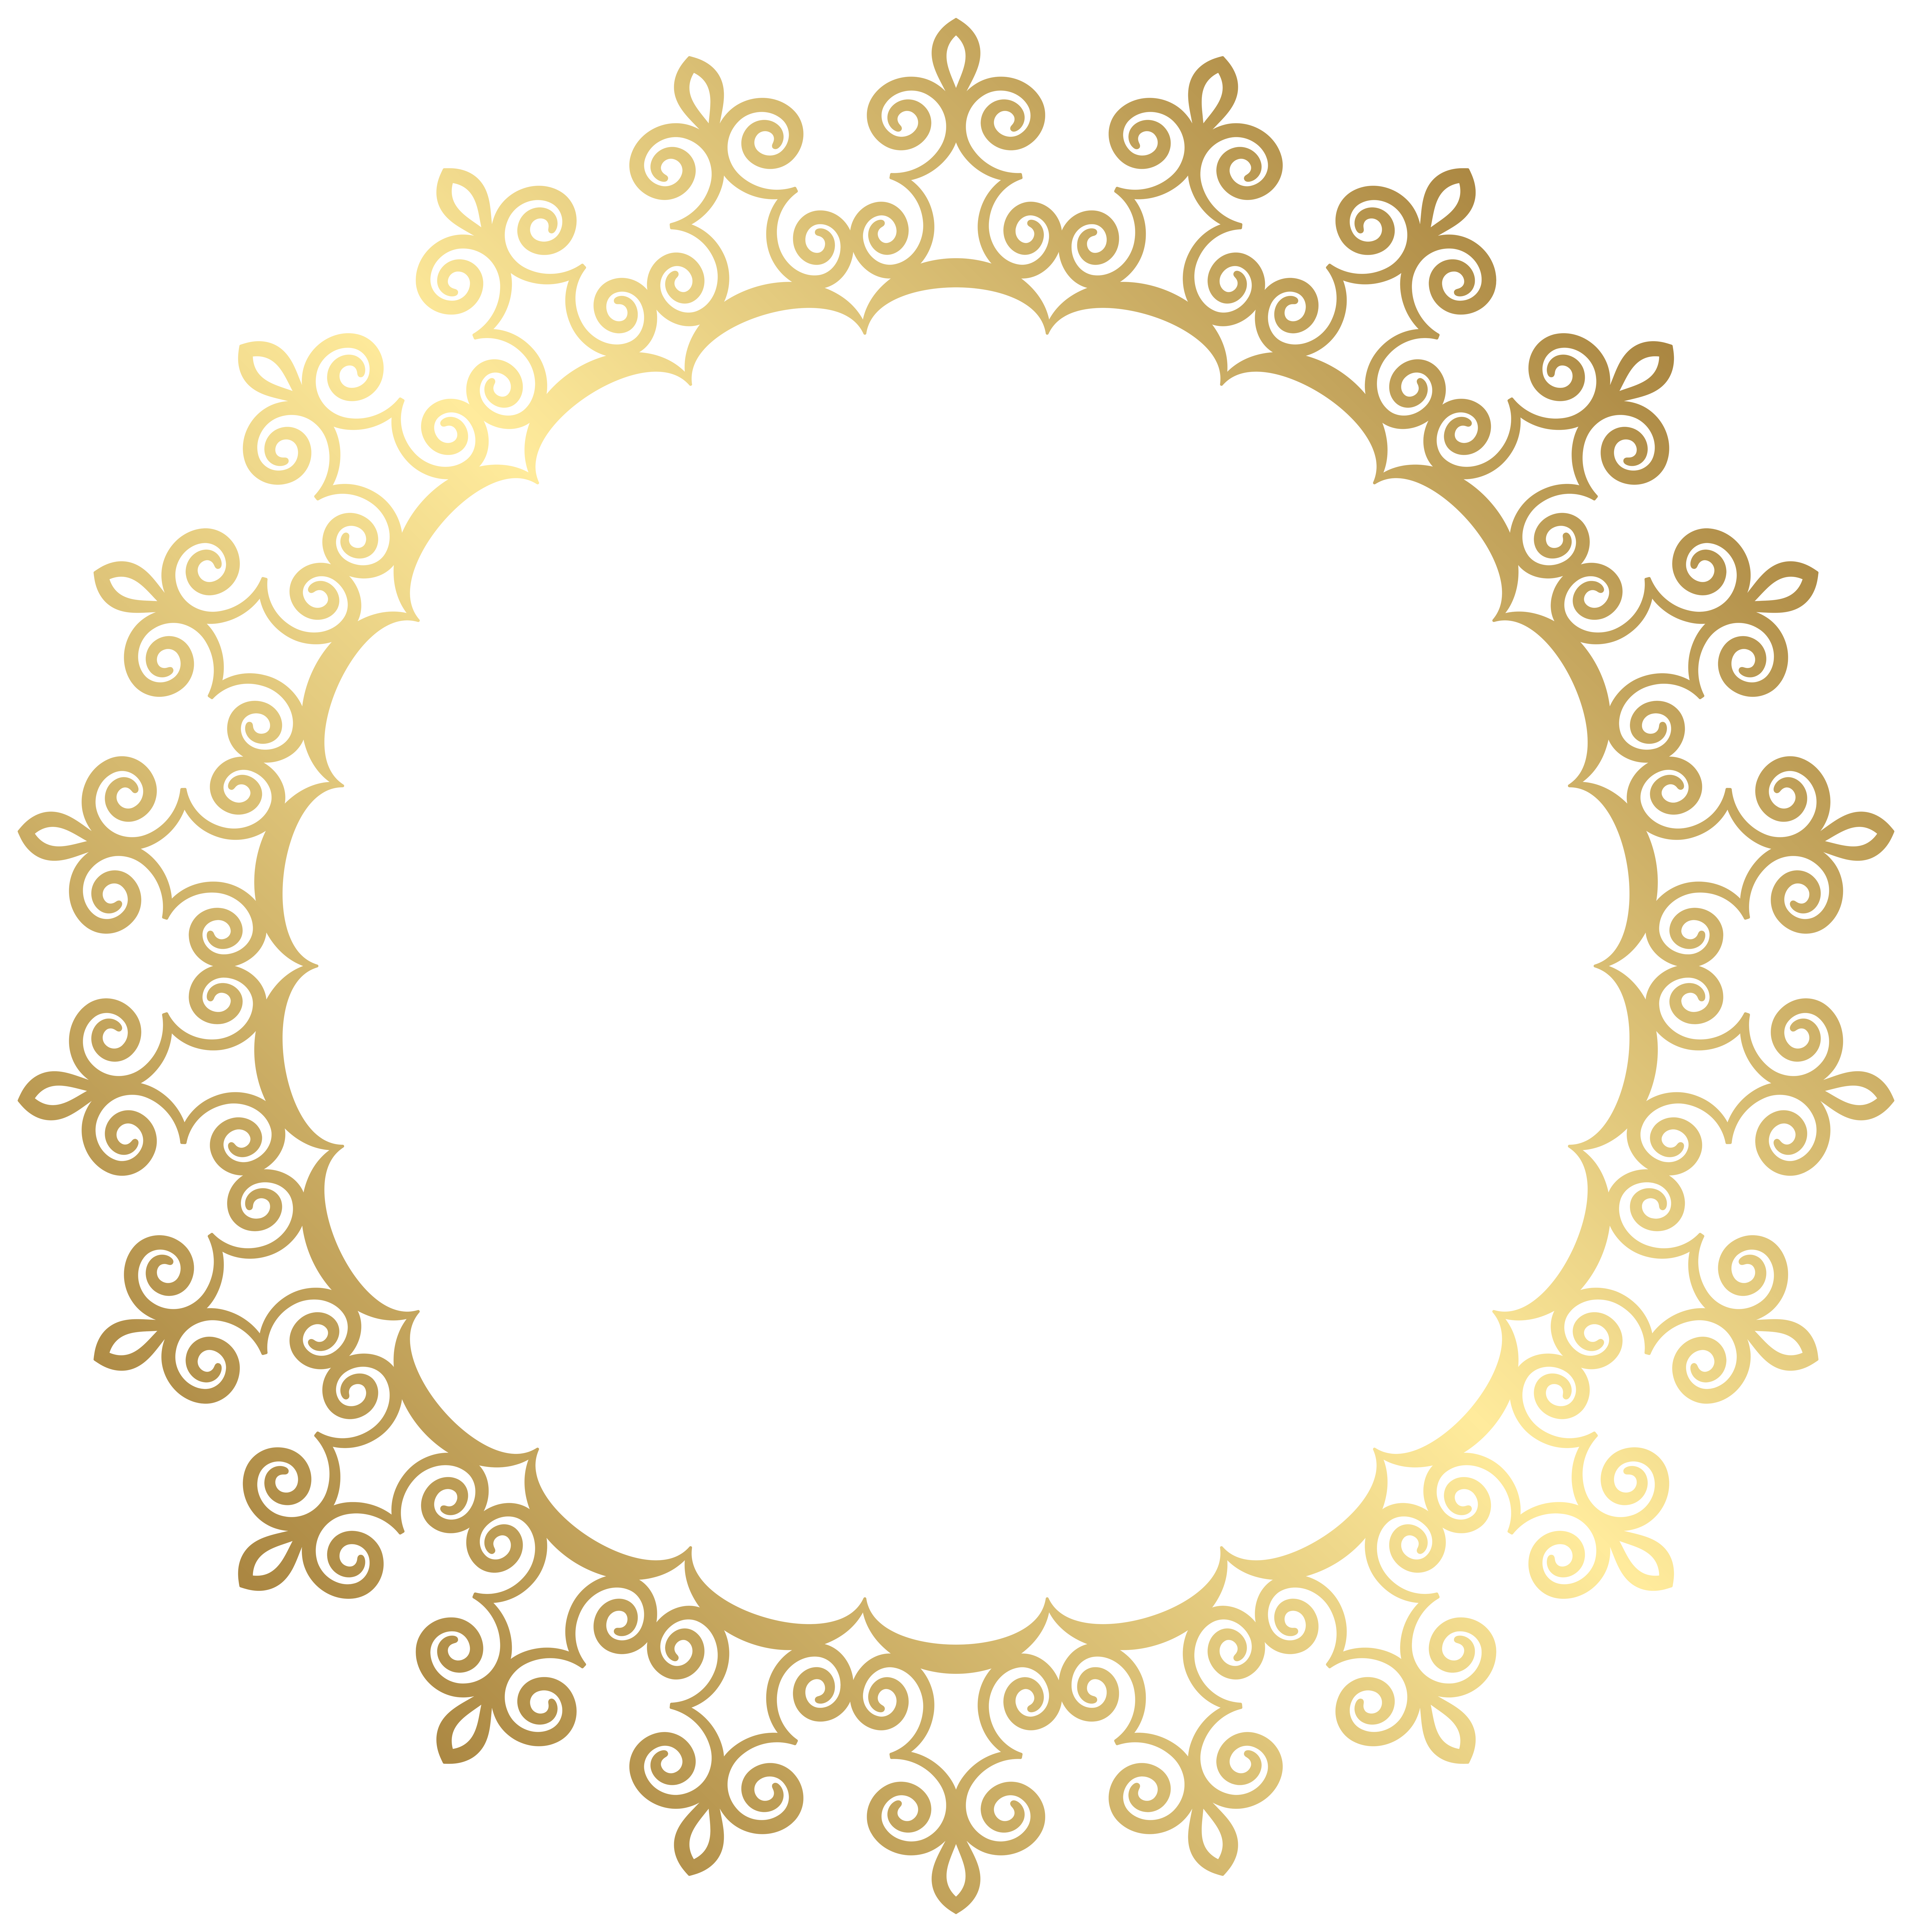 Gold circle frame png. Round border transparent clip